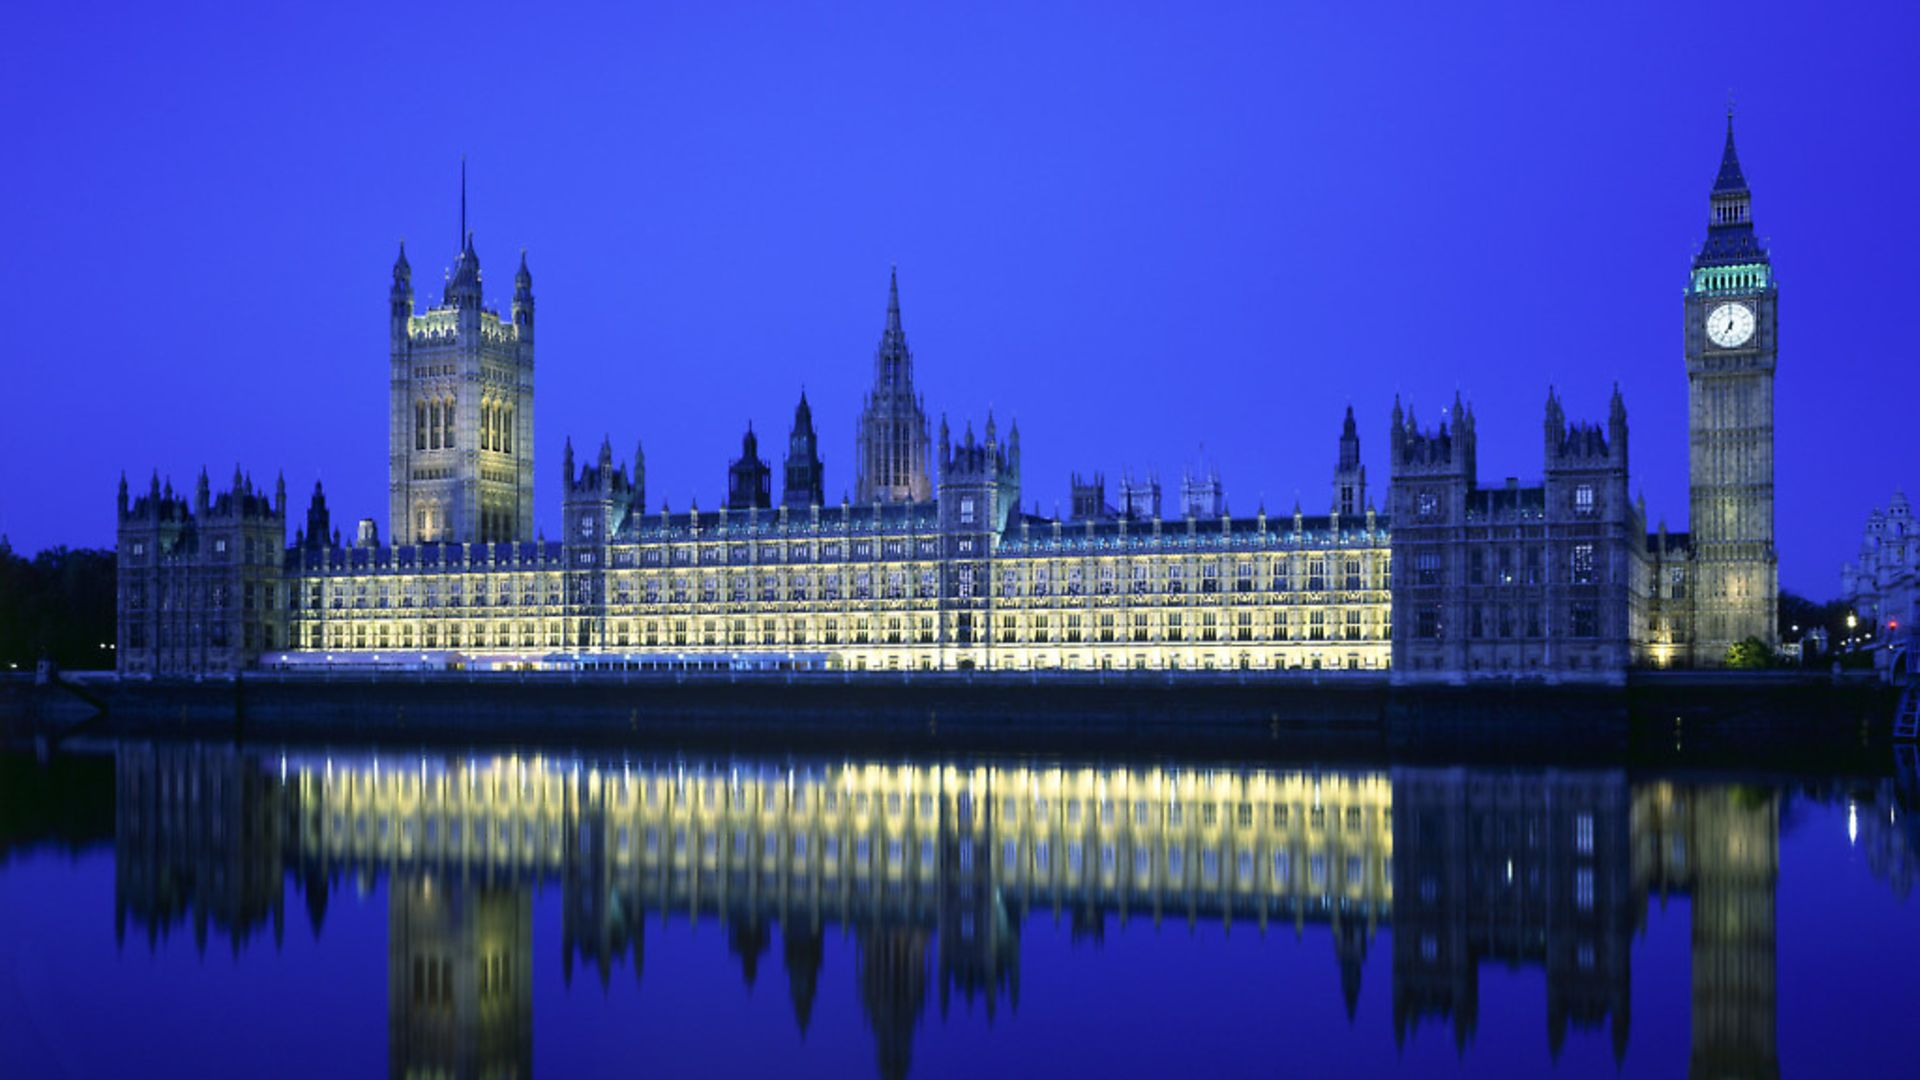 The Houses of Parliament. (Photo by English Heritage/Heritage Images/Getty Images) - Credit: Getty Images